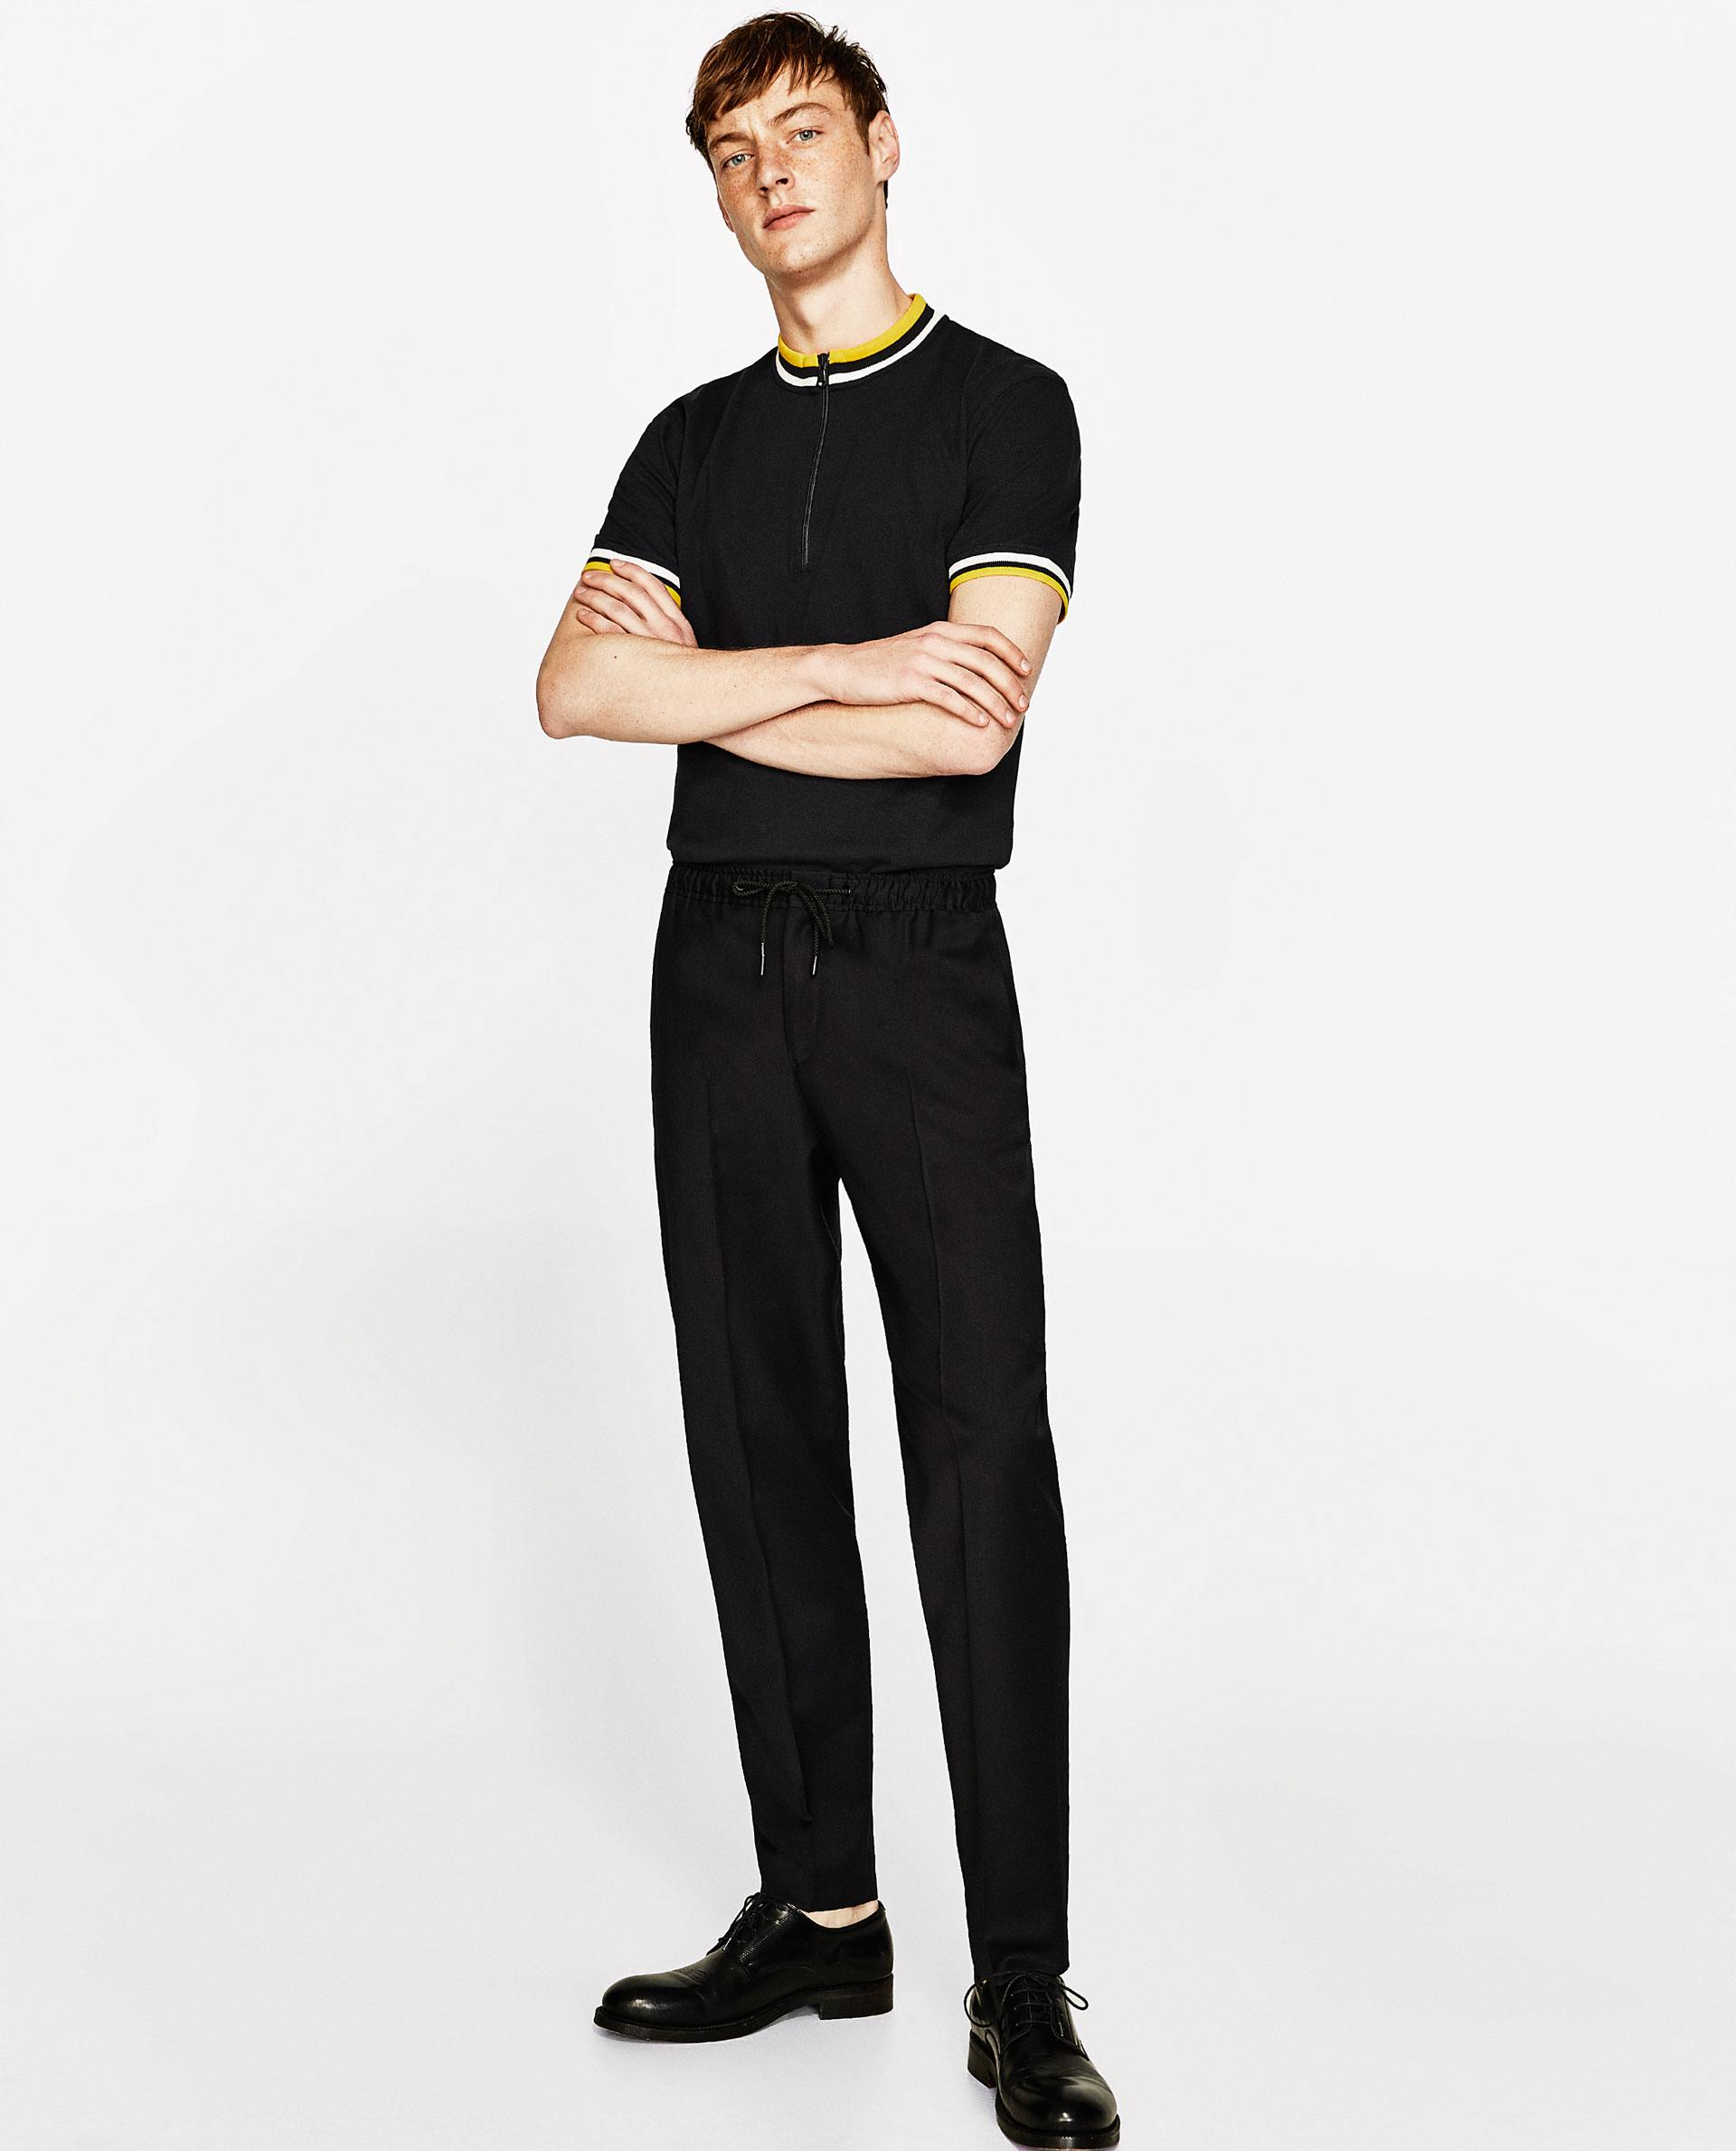 zara polo shirt and joggers - embroidered polo shirts